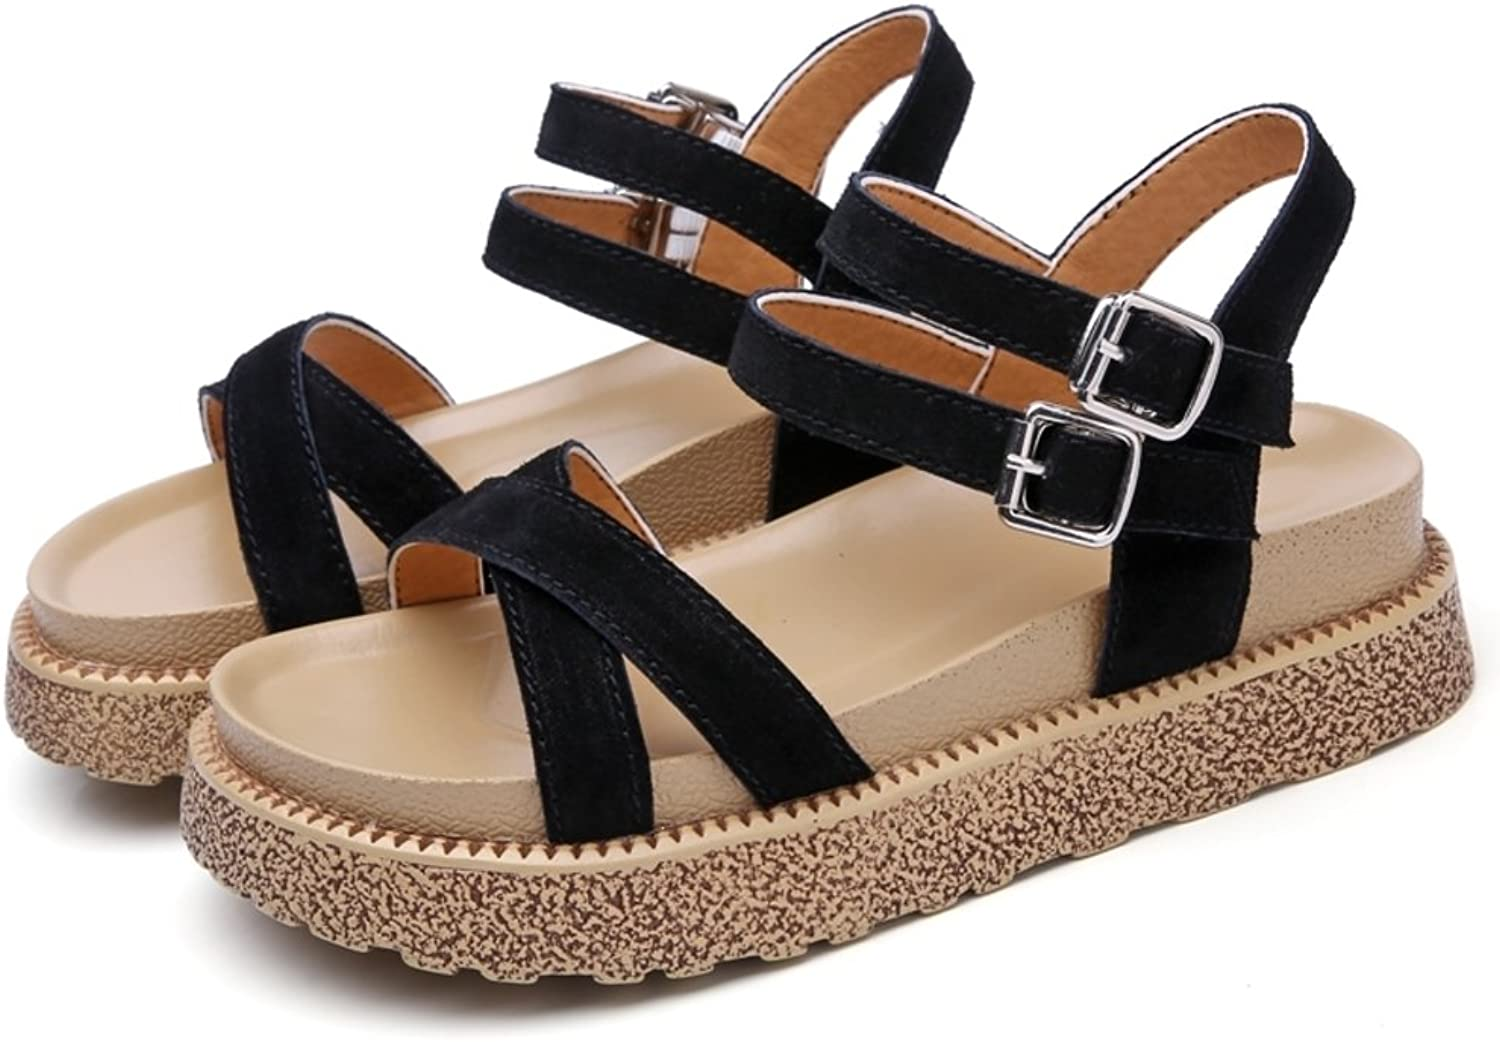 MET RXL Summer,Thick-Soled,Middle Heel Sandals Lady,Flat,Comfort Sandals